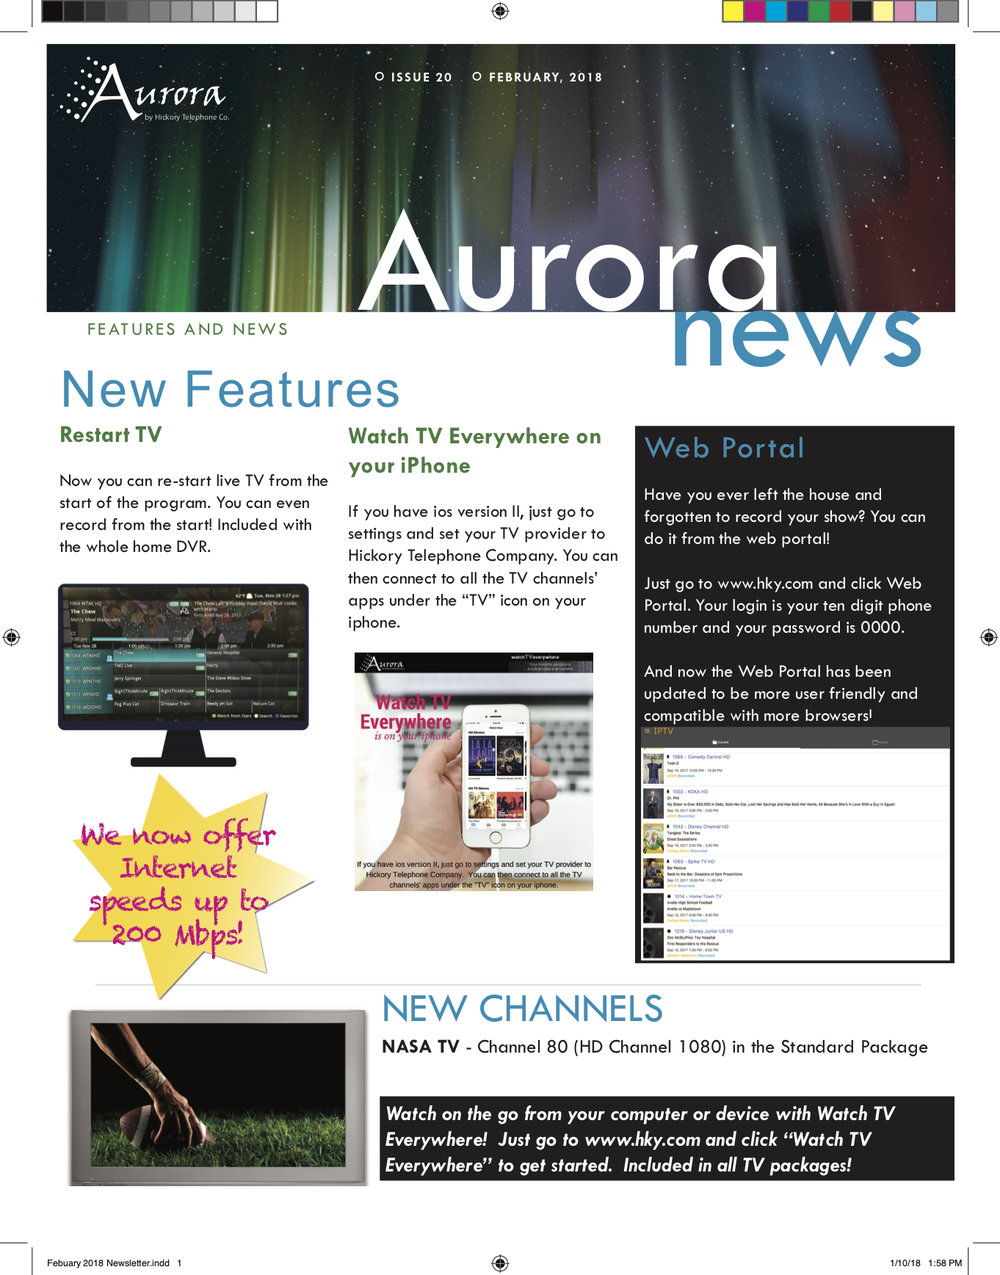 aurora newsletter.jpg